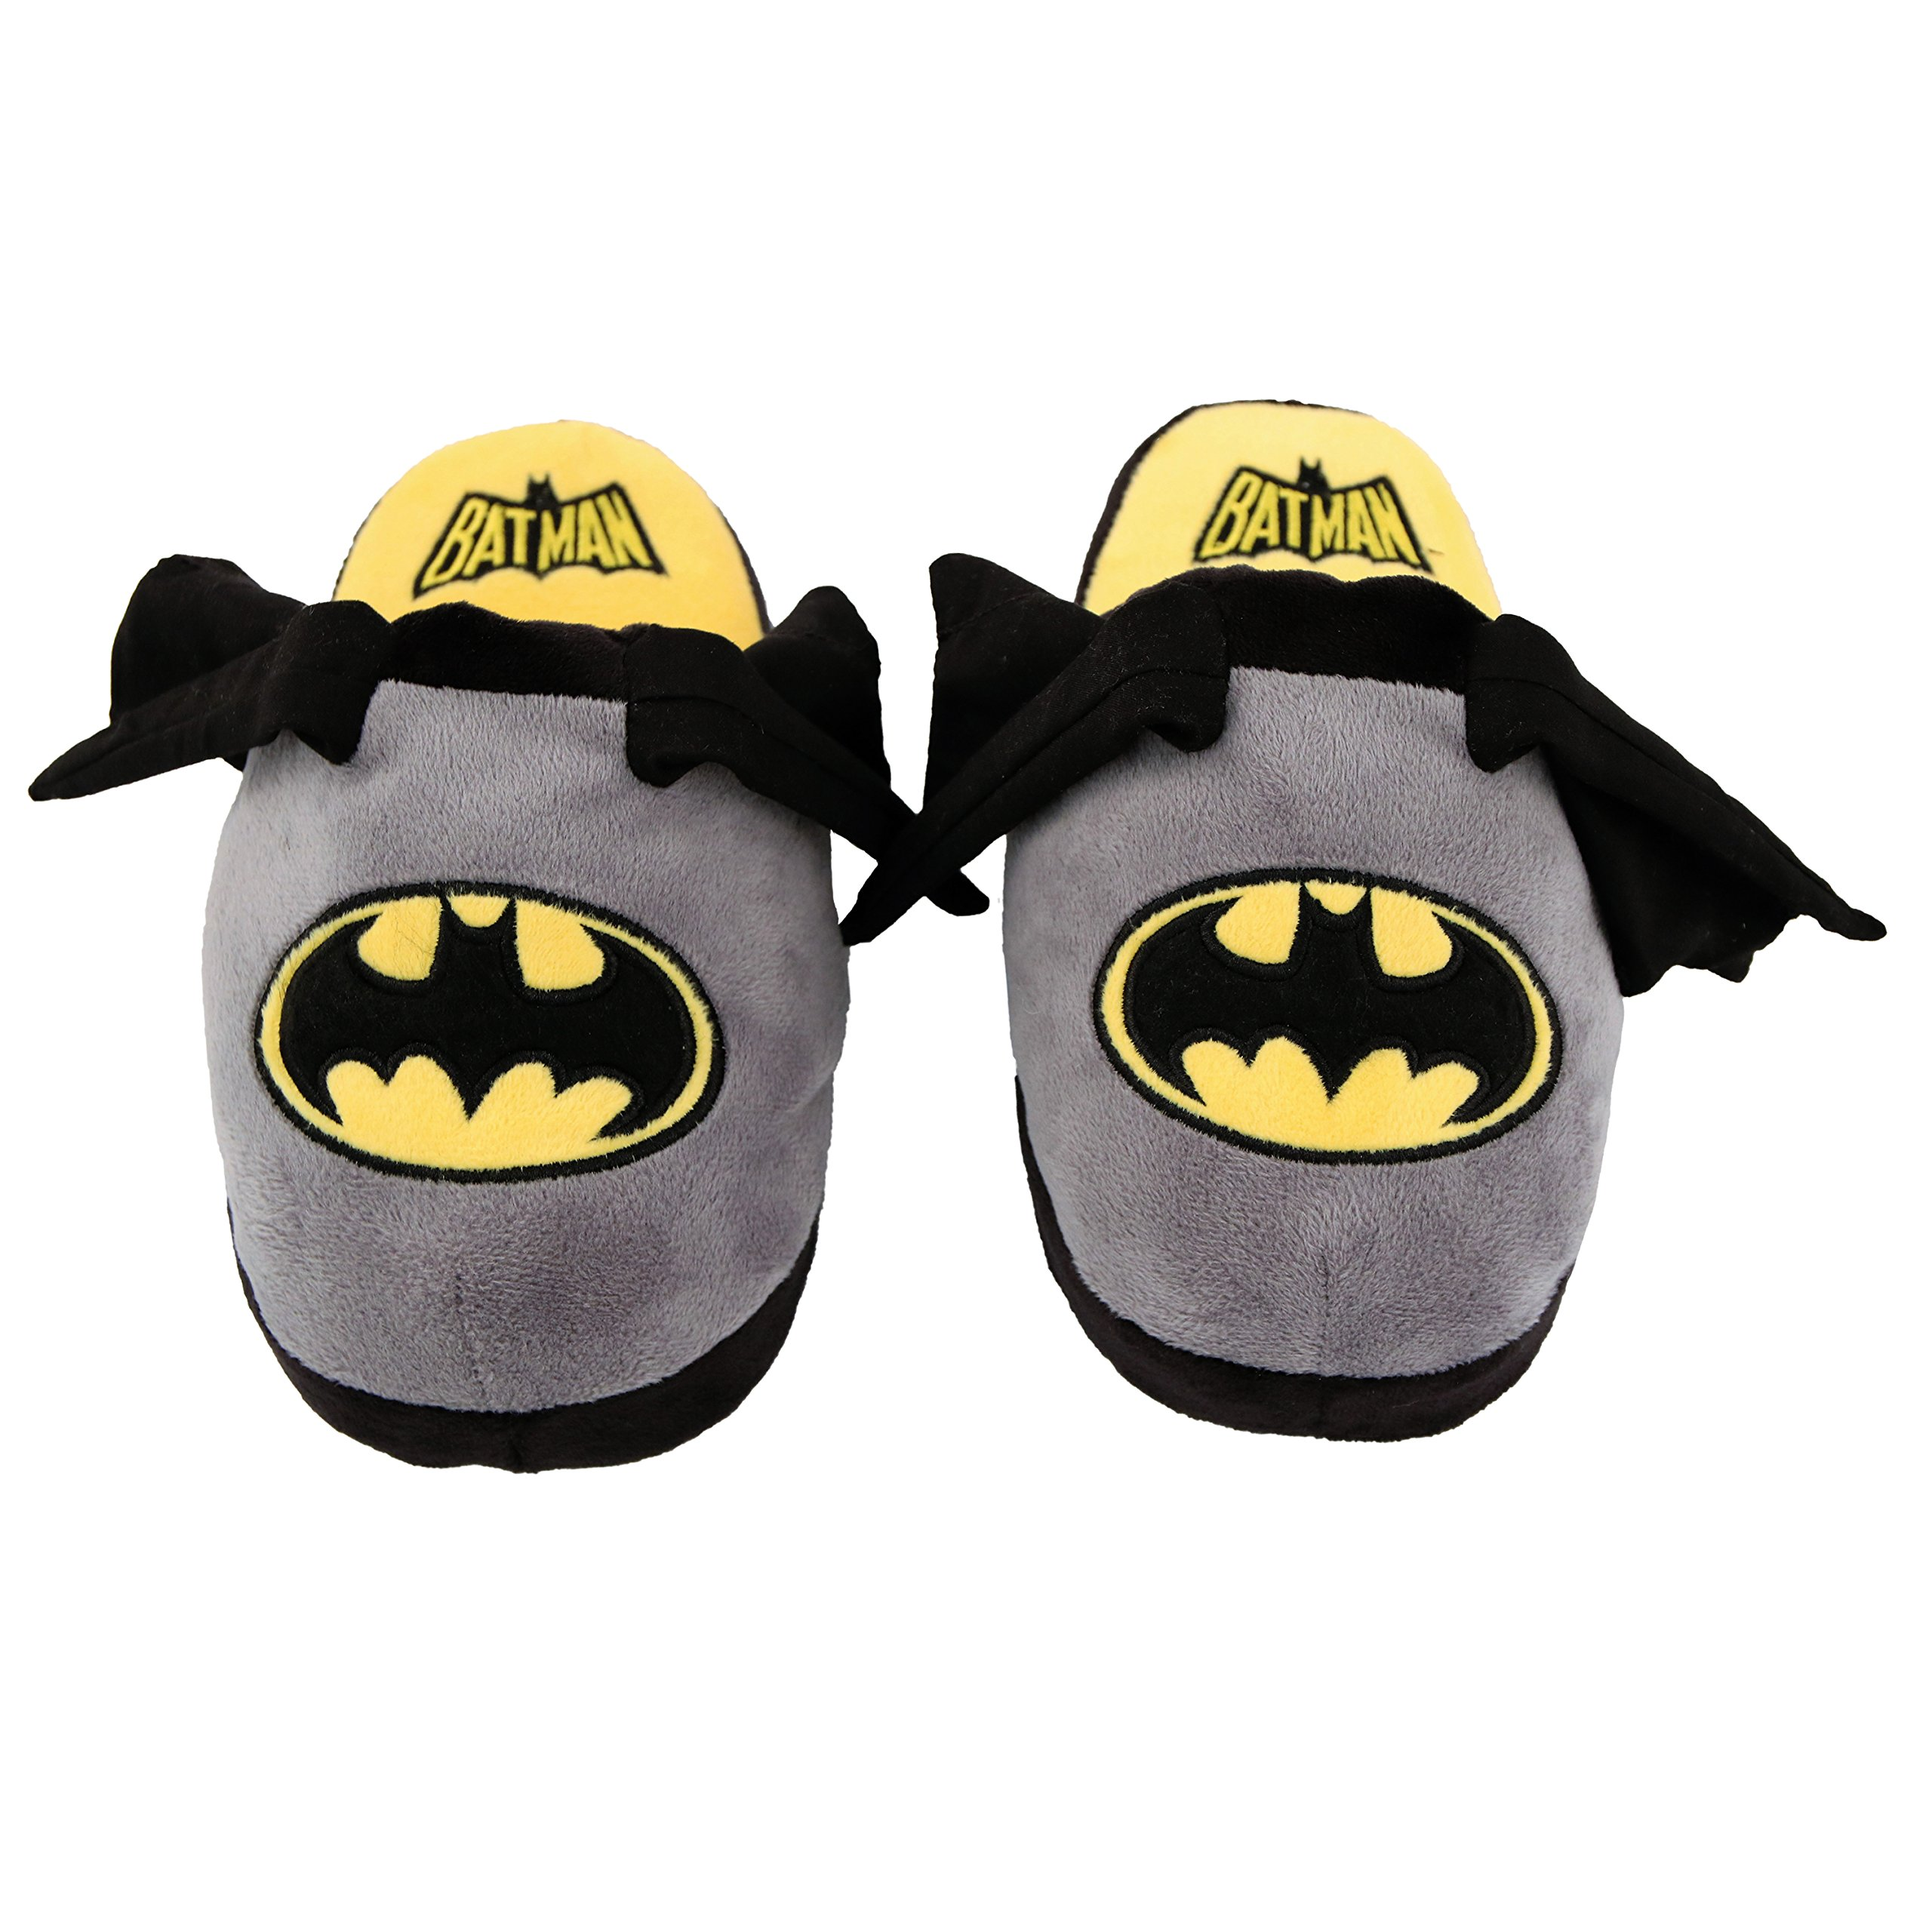 Stompeez Animated Batman Plush Slippers - Ultra Soft and Fuzzy - Wings Flap as You Walk - Medium - by